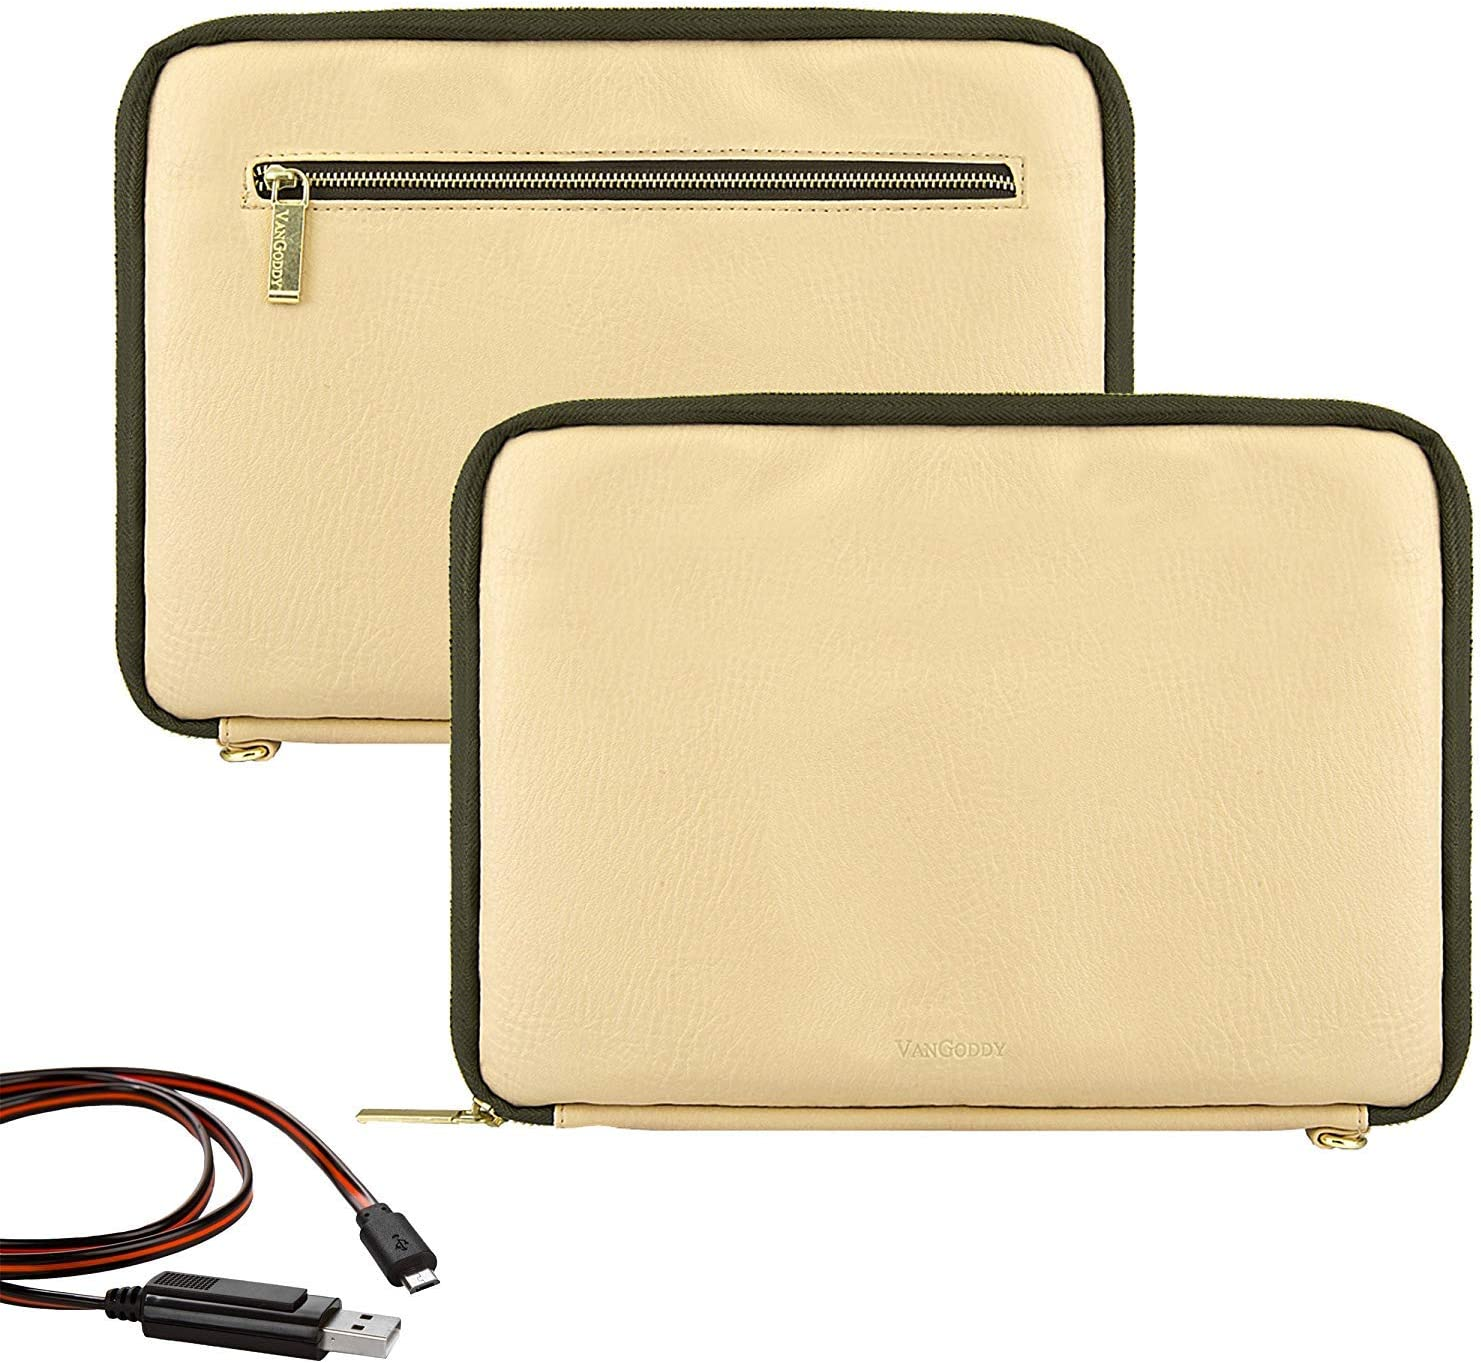 Vangoddy Irista 10 inch Compact PU Leather Sleeve for Acer Iconia One 7,Iconia One 8 B1 870 Tan Olive USB Cable